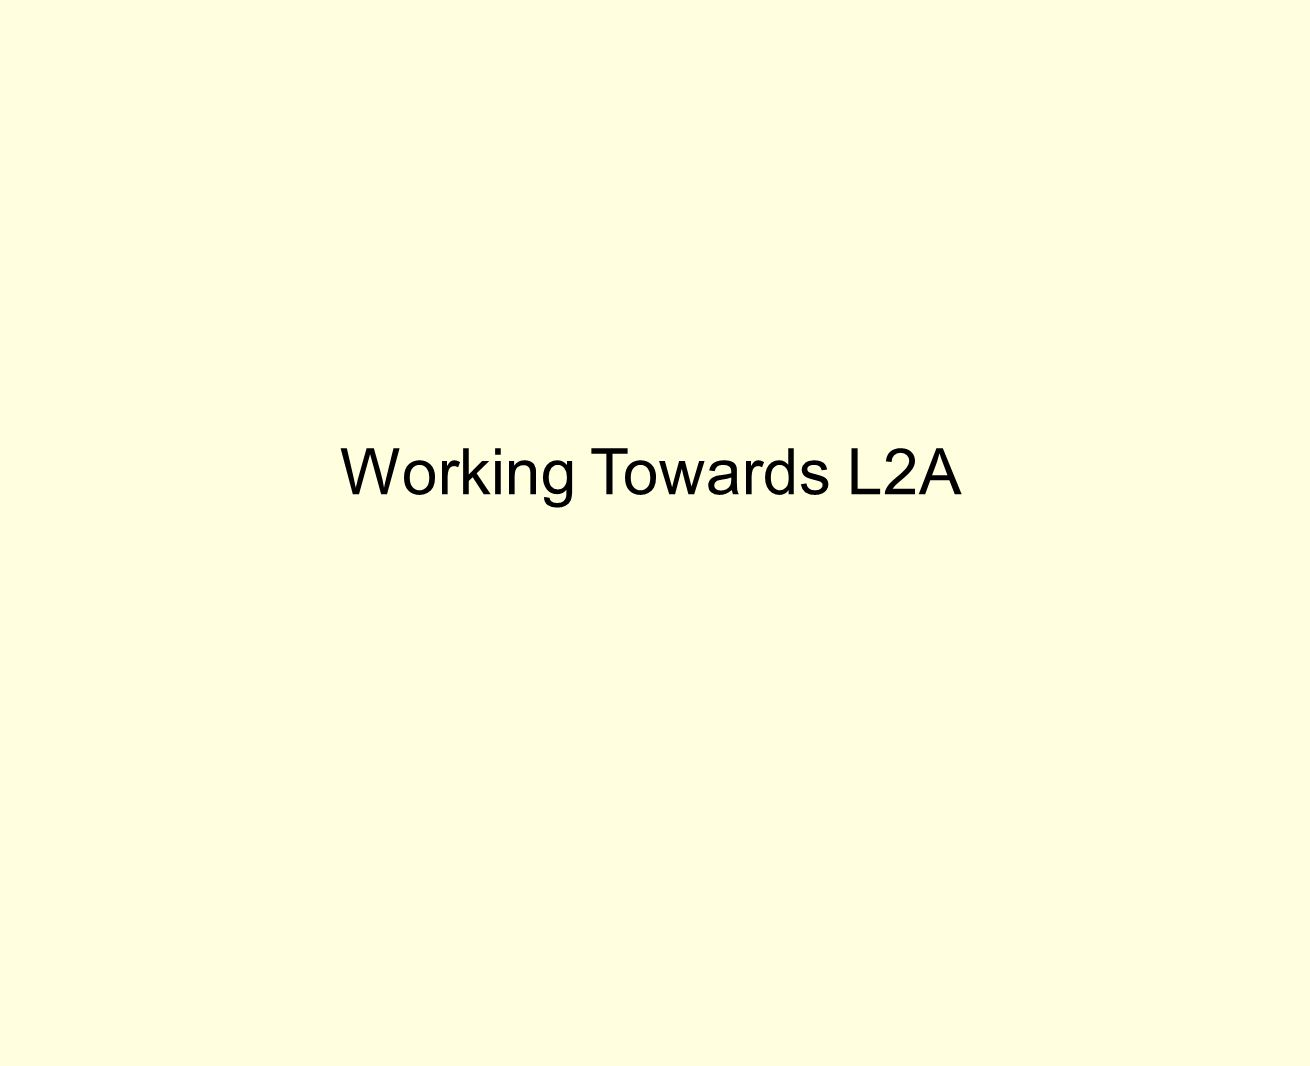 Working Towards L2A